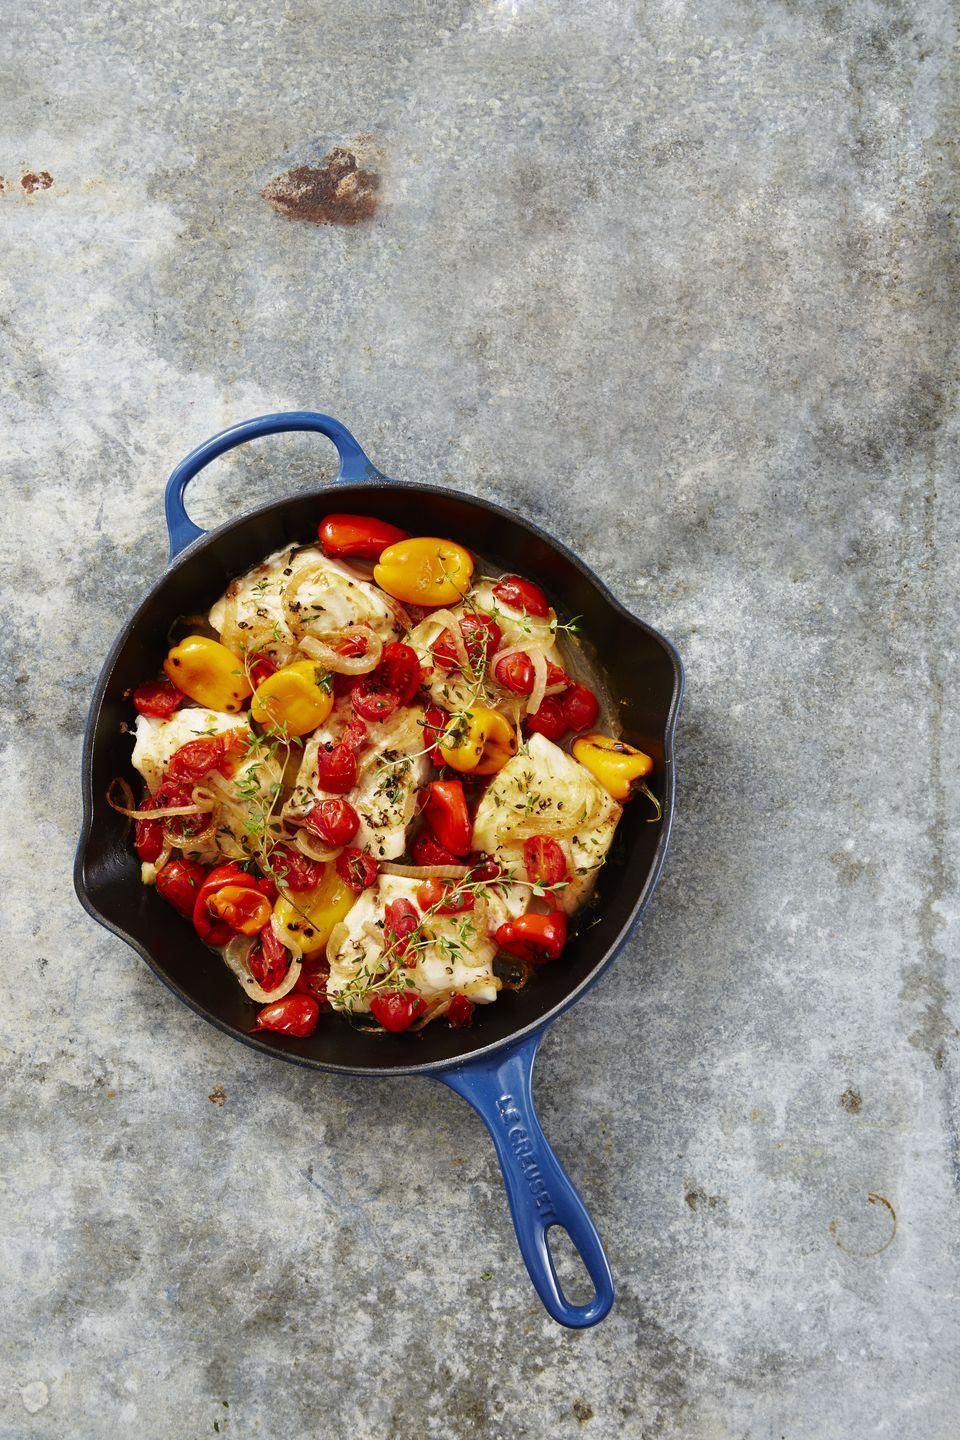 """<p>You'll sear this flaky cod on the stovetop for 10 minutes, and then follow up by finishing it off in a hot stove for another 10 minutes.</p><p><a href=""""https://www.goodhousekeeping.com/food-recipes/a40892/mediterranean-cod-recipe/"""" rel=""""nofollow noopener"""" target=""""_blank"""" data-ylk=""""slk:Get the recipe for Mediterranean Baked Cod »"""" class=""""link rapid-noclick-resp""""><em>Get the recipe for Mediterranean Baked Cod »</em></a></p>"""